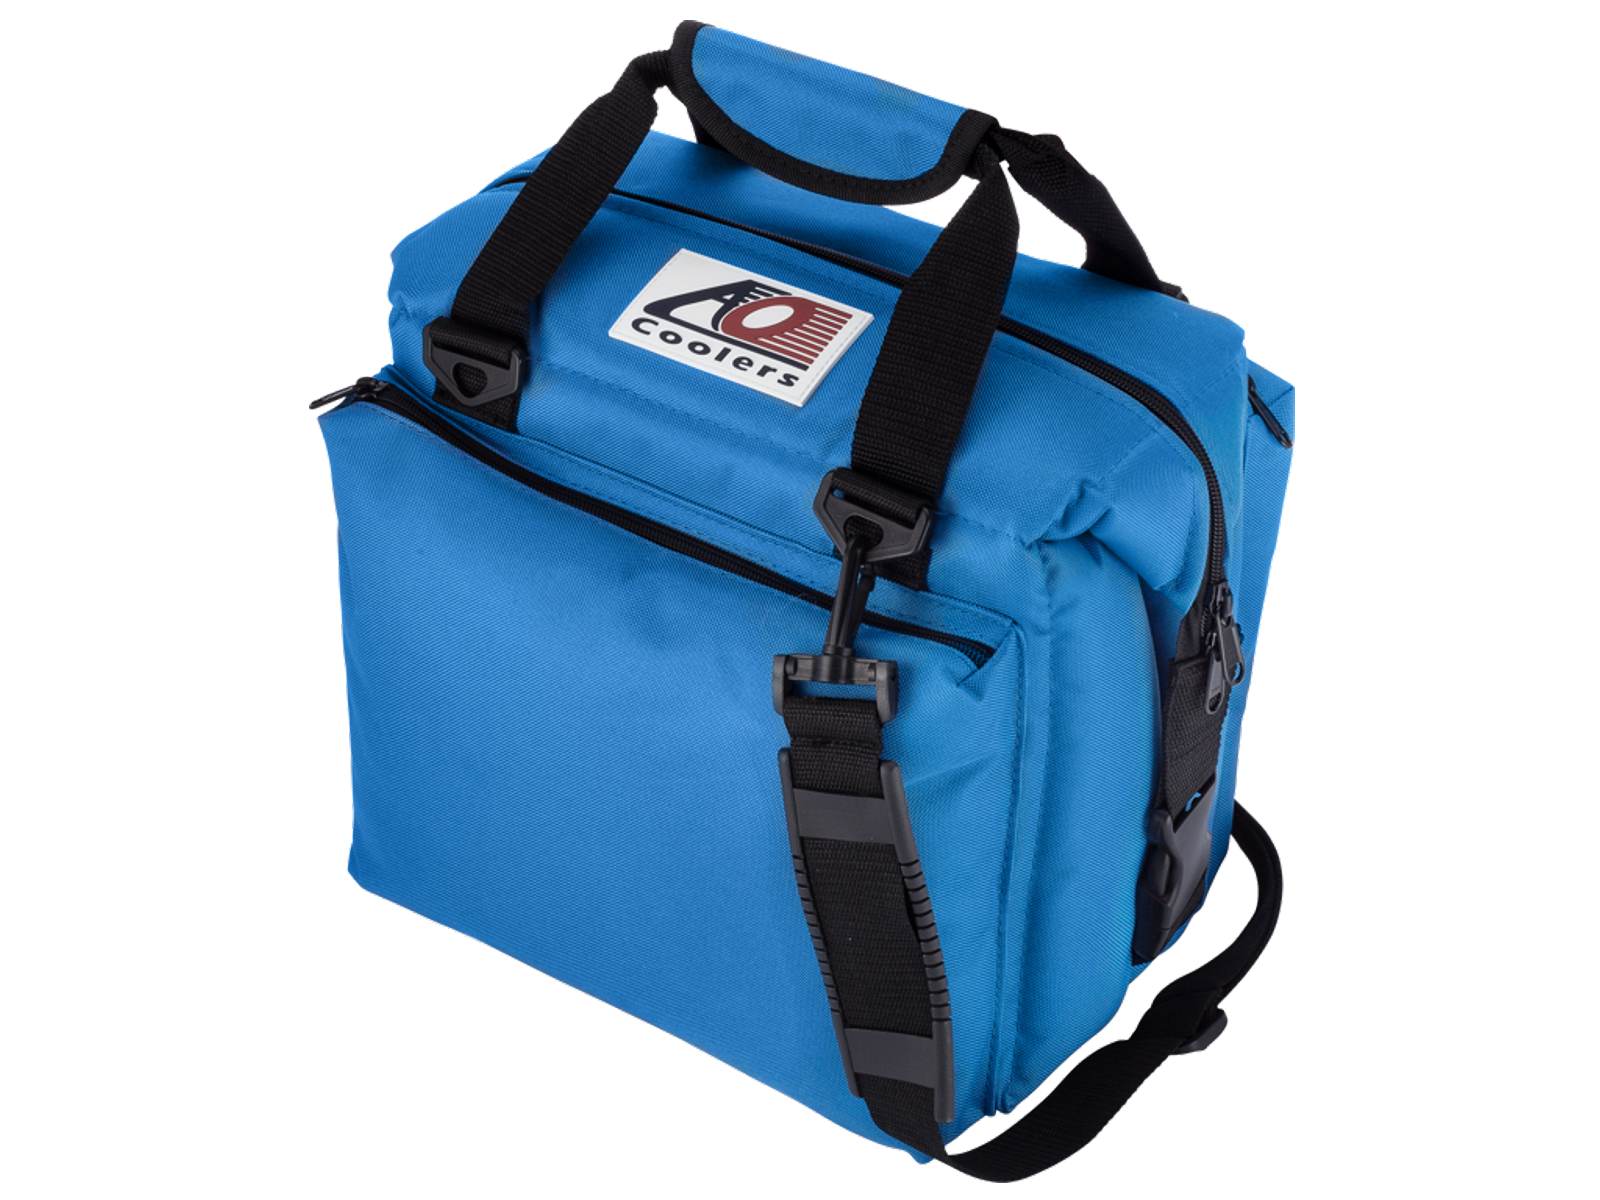 c73fd5a00 AO Cooler Bag / Portable Rinse Tank -12 Pack - Bluewater Photo